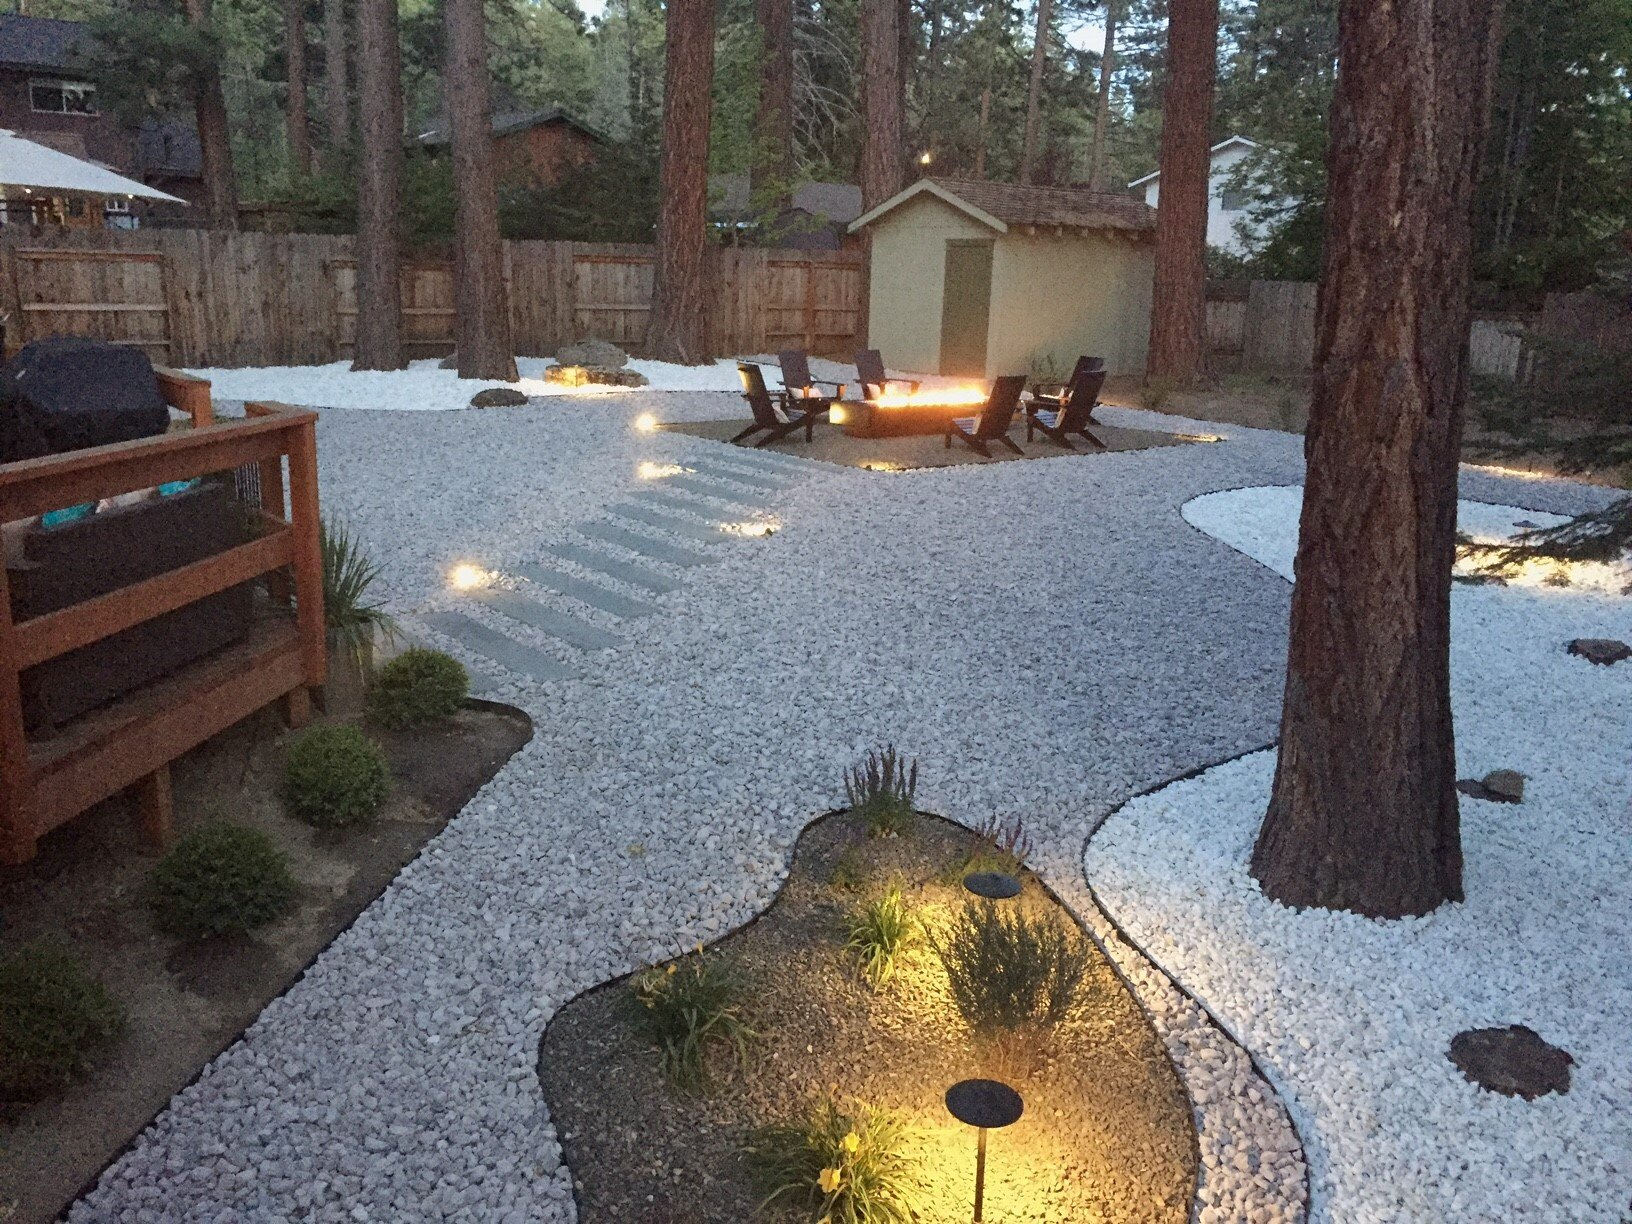 Landscaping Companies Near Me Patio Pavers Spanish Springs Nv Firesky Outdoor Designed By Landscape Architects Built By Craftsmen